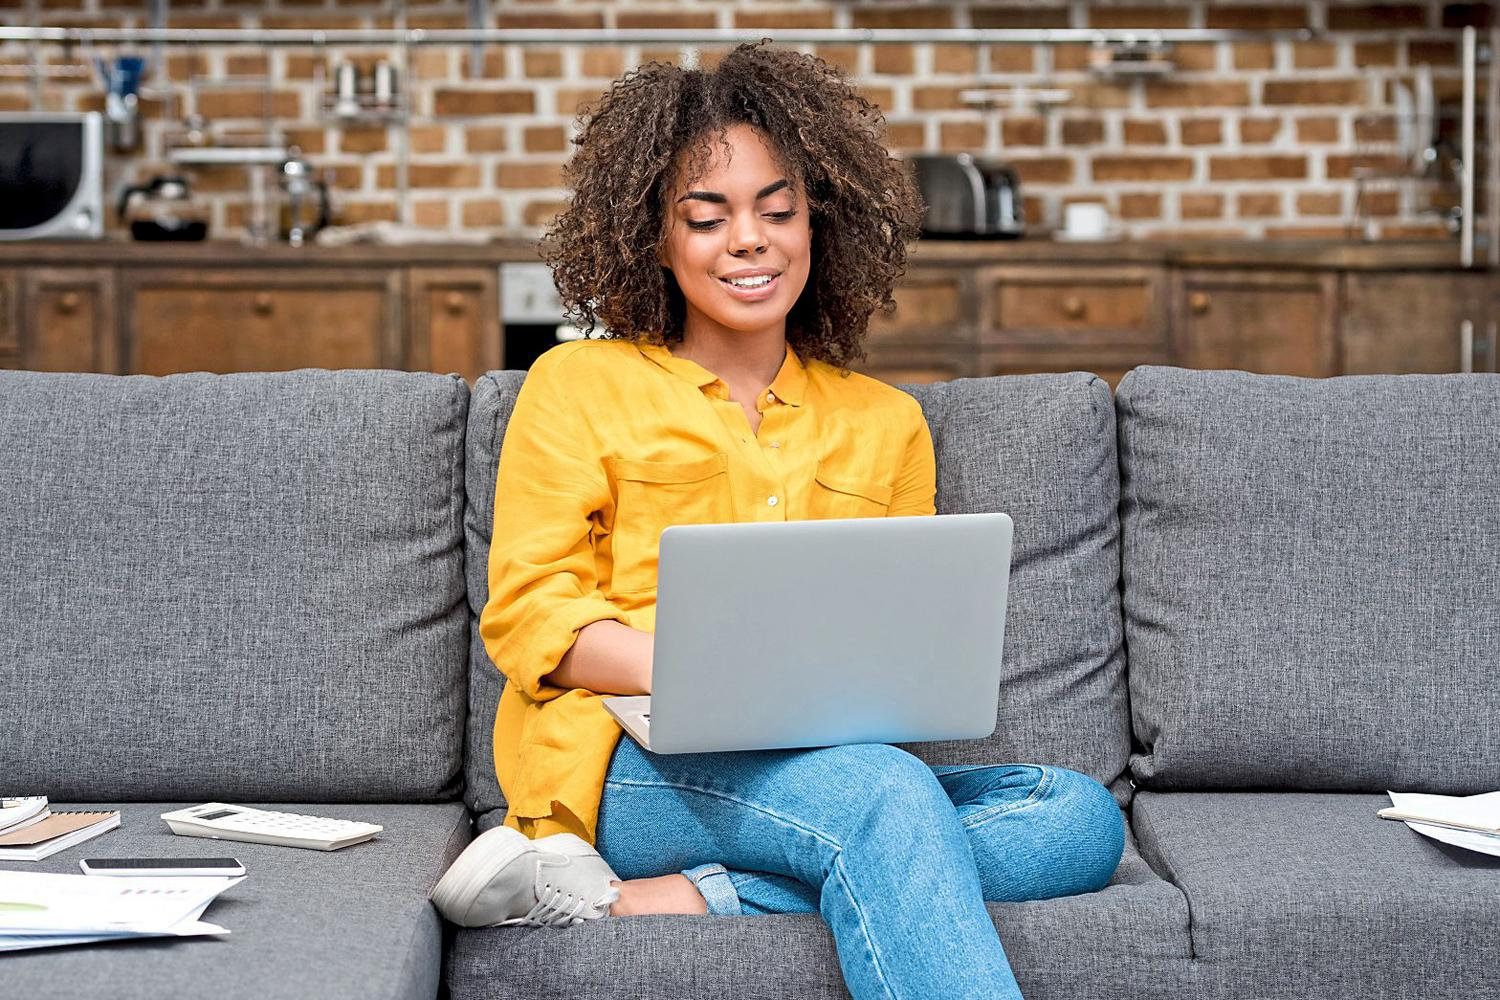 Working from home: What should businesses think about?